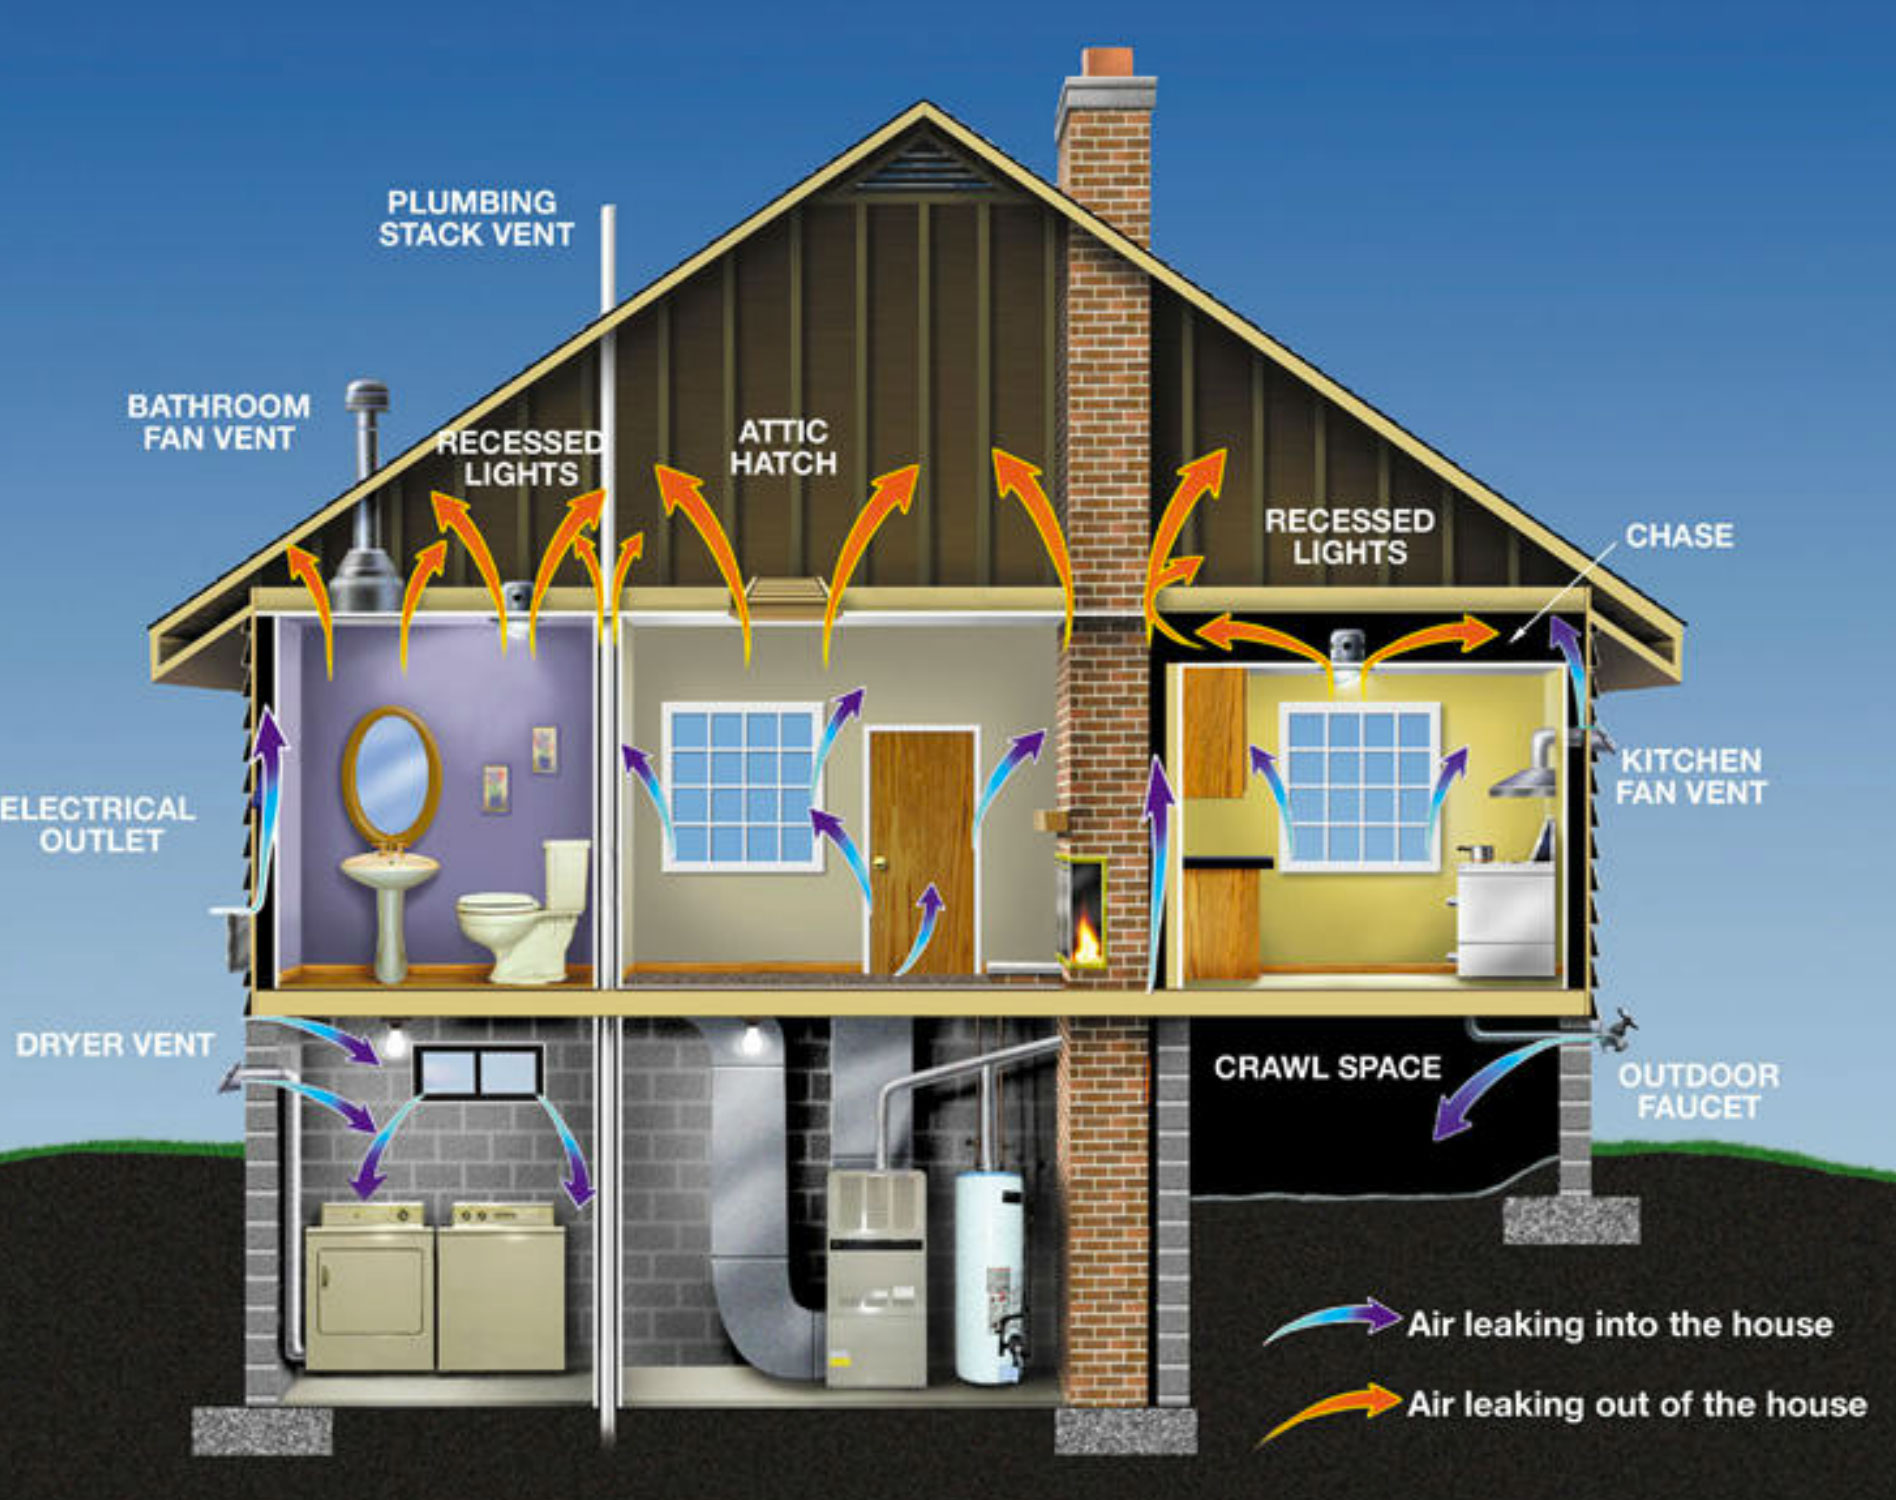 Common areas of air leaks in a home you should aim to seal.  Click to zoom